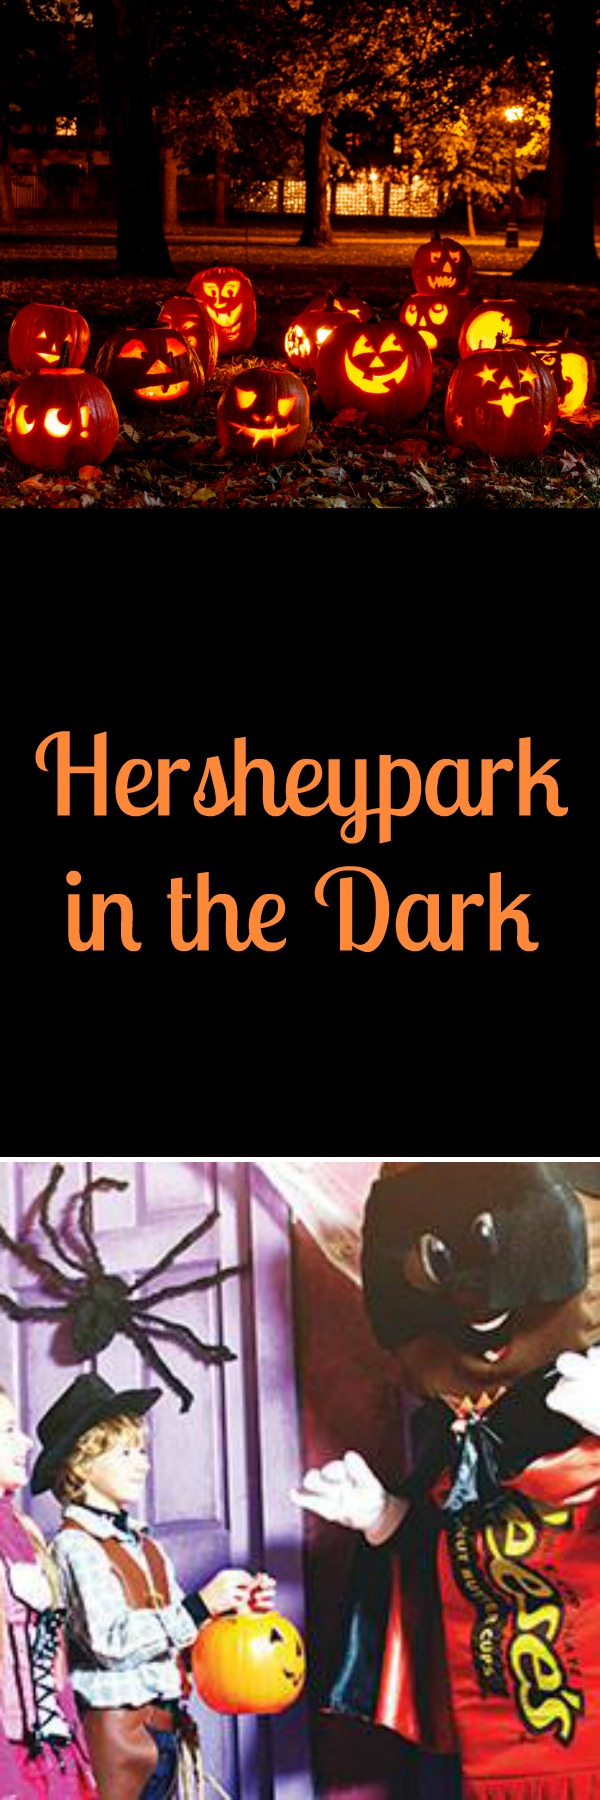 Halloween in Hershey means one thing...Hersheypark in the Dark! This fun, family friendly attraction is perfect for kids of all ages and isn't just at Hersheypark. The whole town of Hershey has sweet treats around every corner, make sure to check it out!